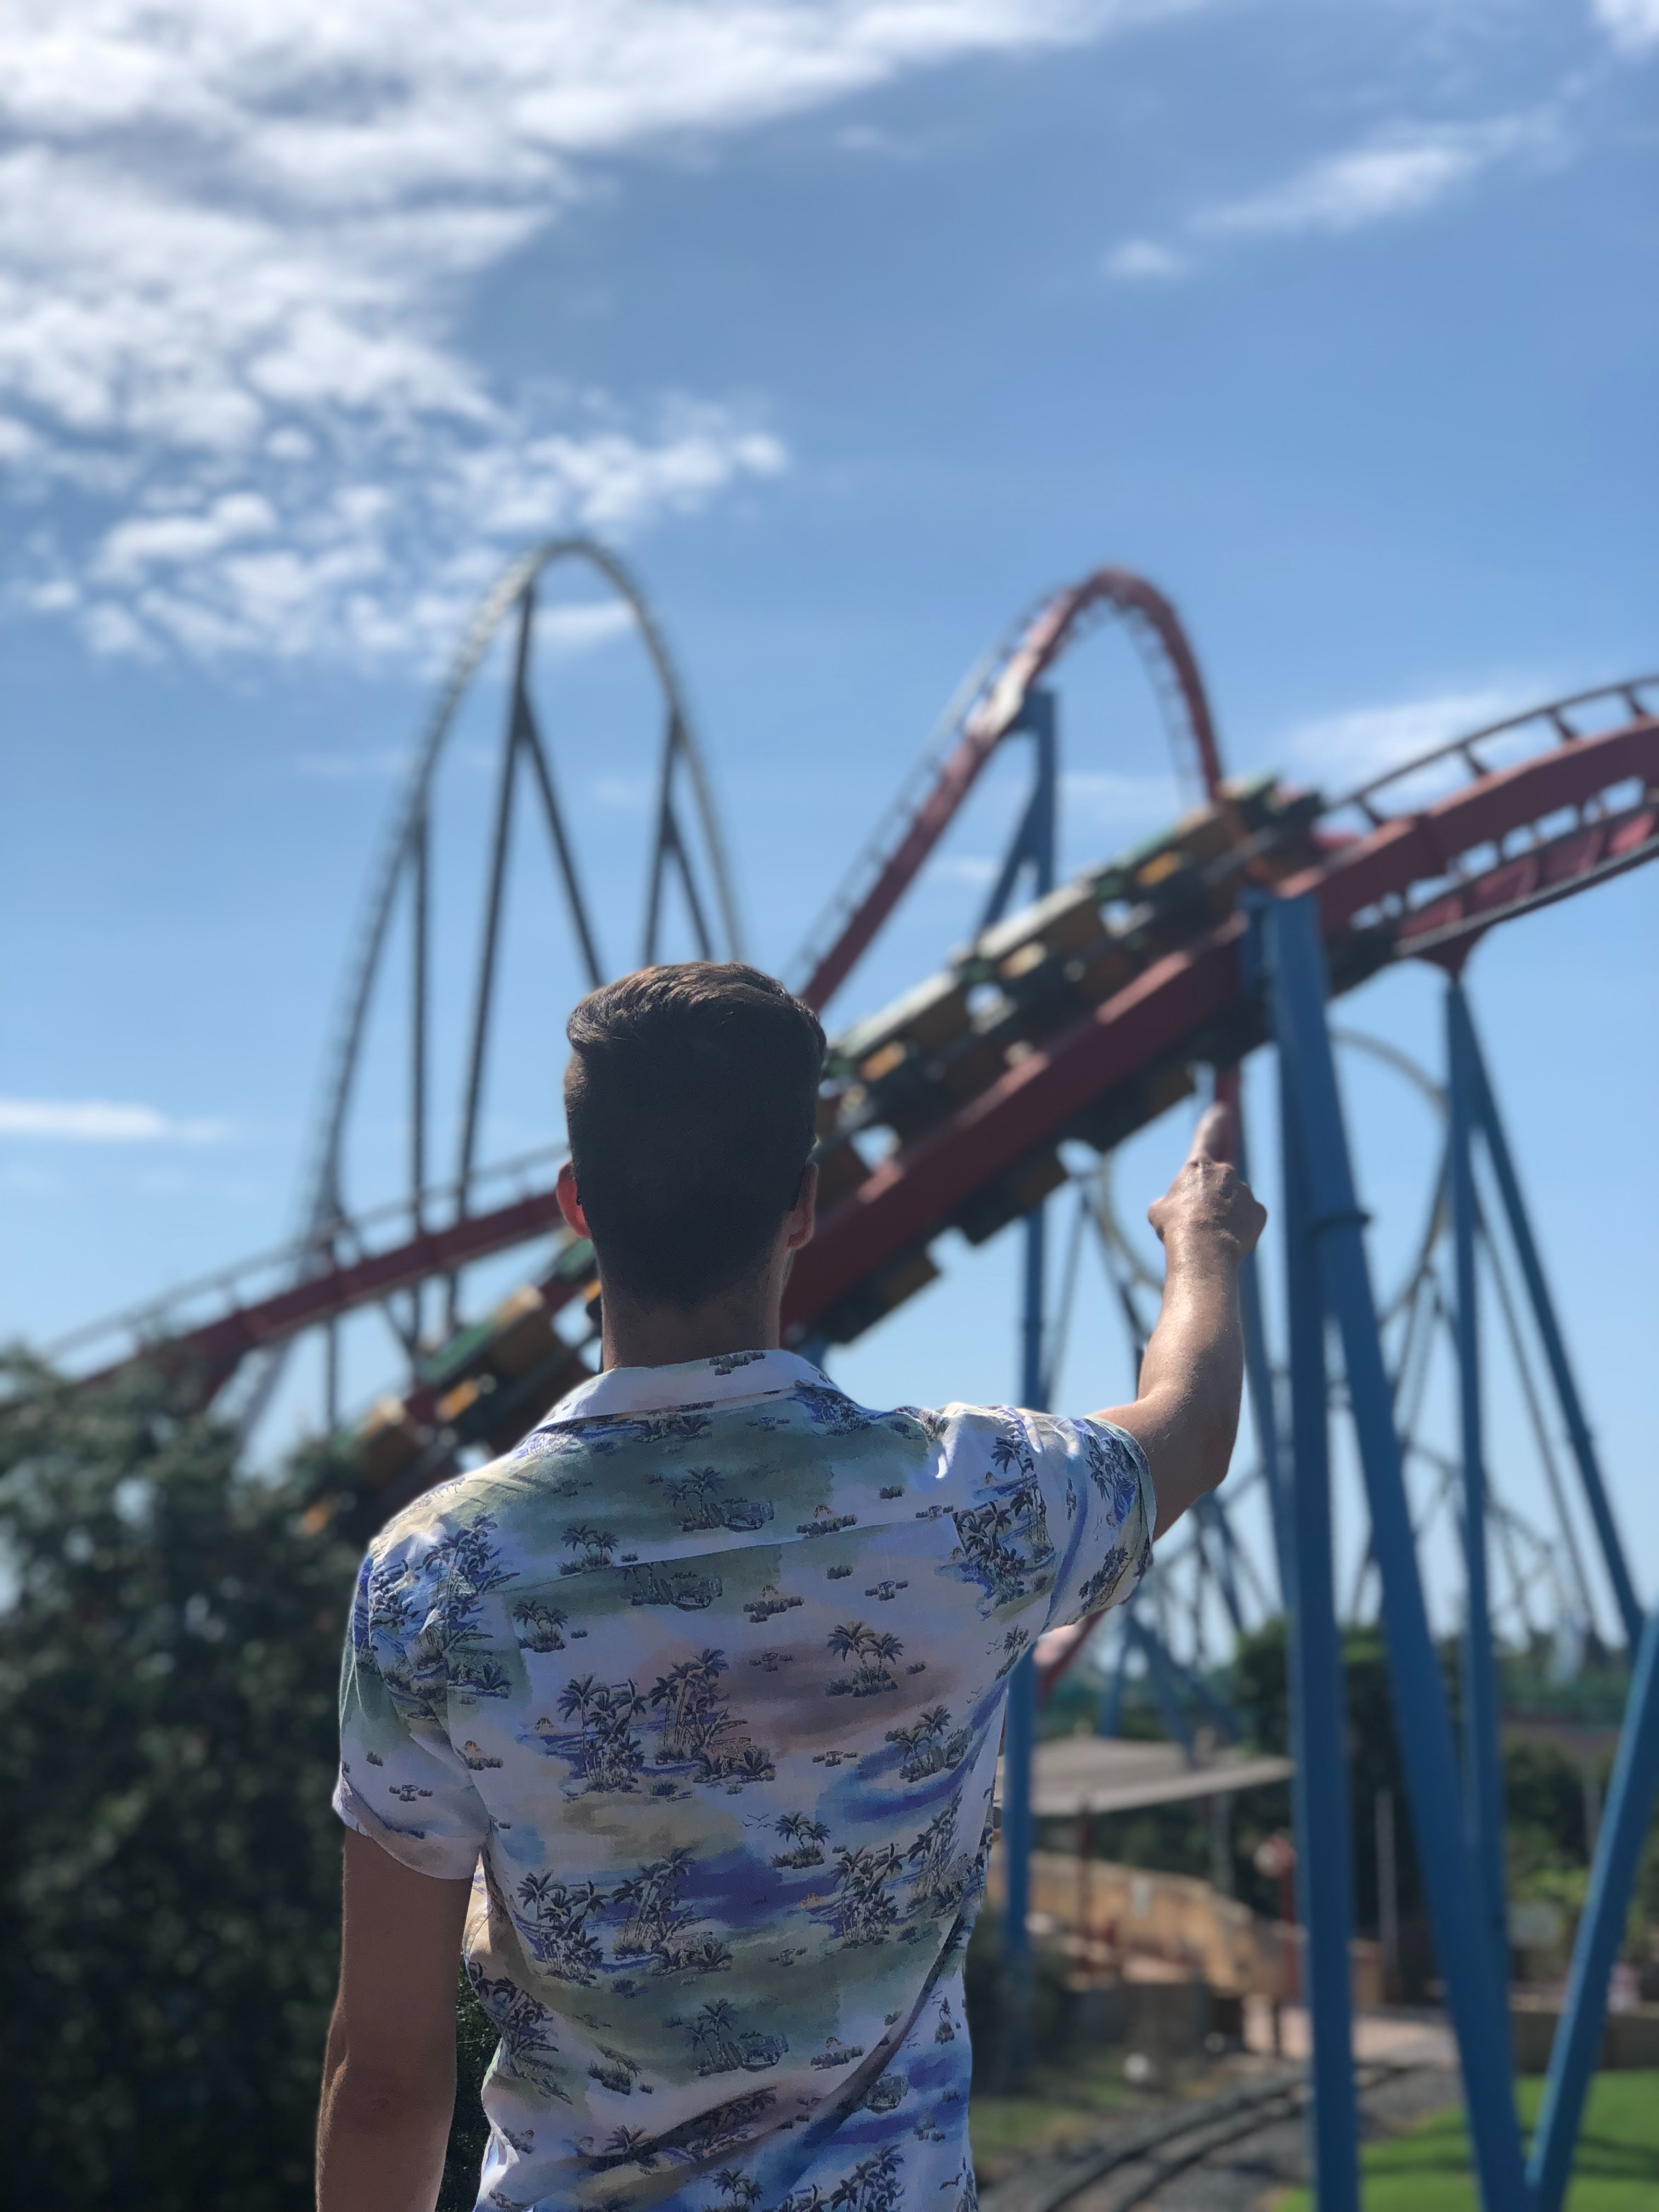 Man pointing at a rollercoaster in the distance